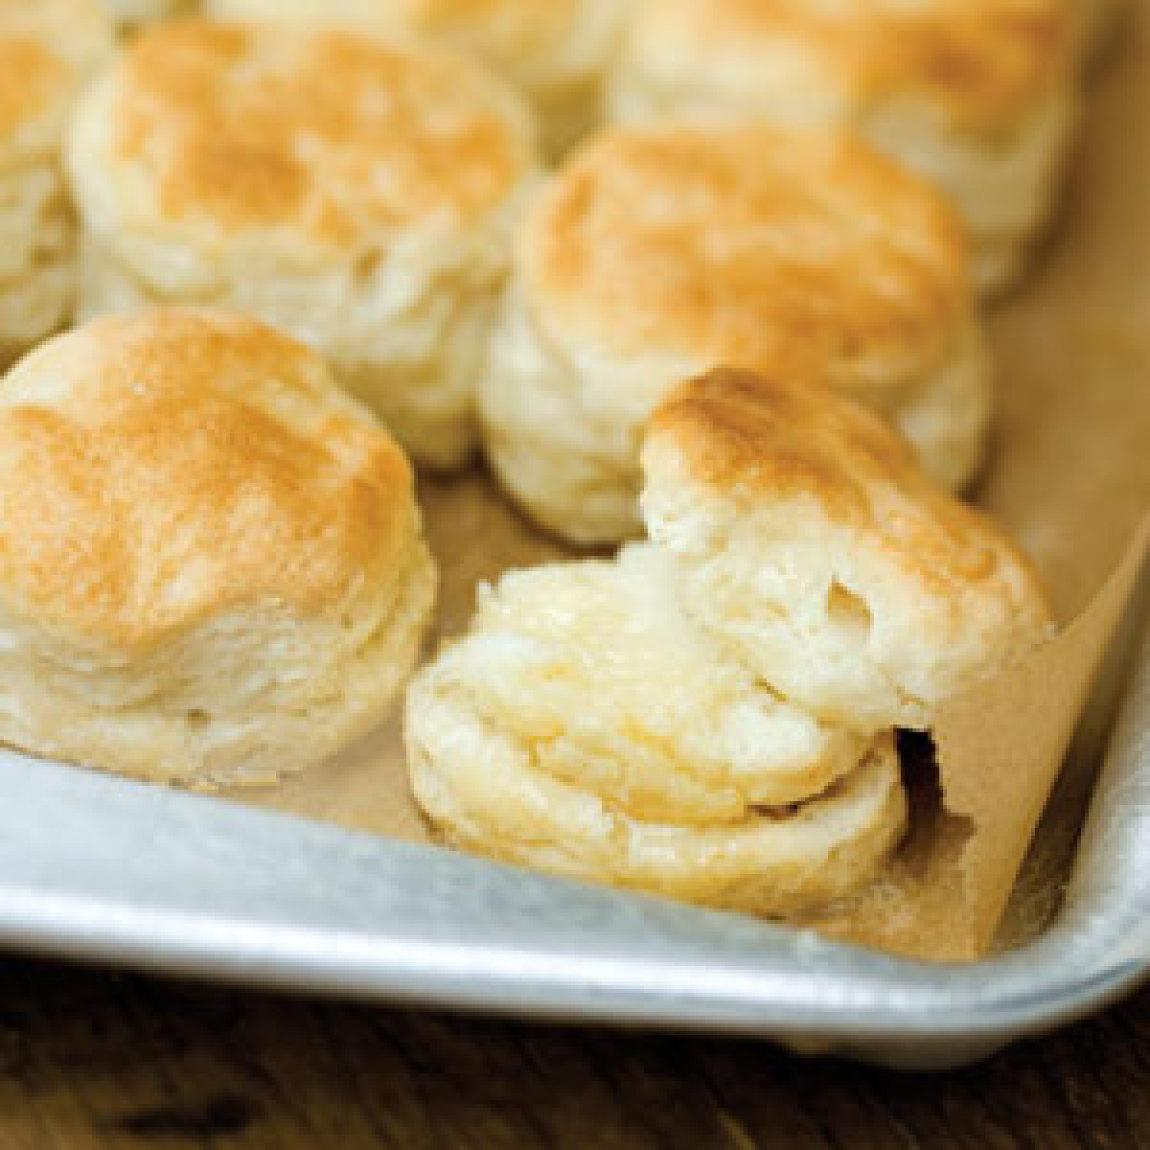 These buttermilk biscuits are authentic. This recipe came from my great-great-grandmother, and was handed down to all the women in my family, and we are all Southern. I am the first one to commit the sin of using a food processor (lol) but I find it works very well. I would put these biscuits .